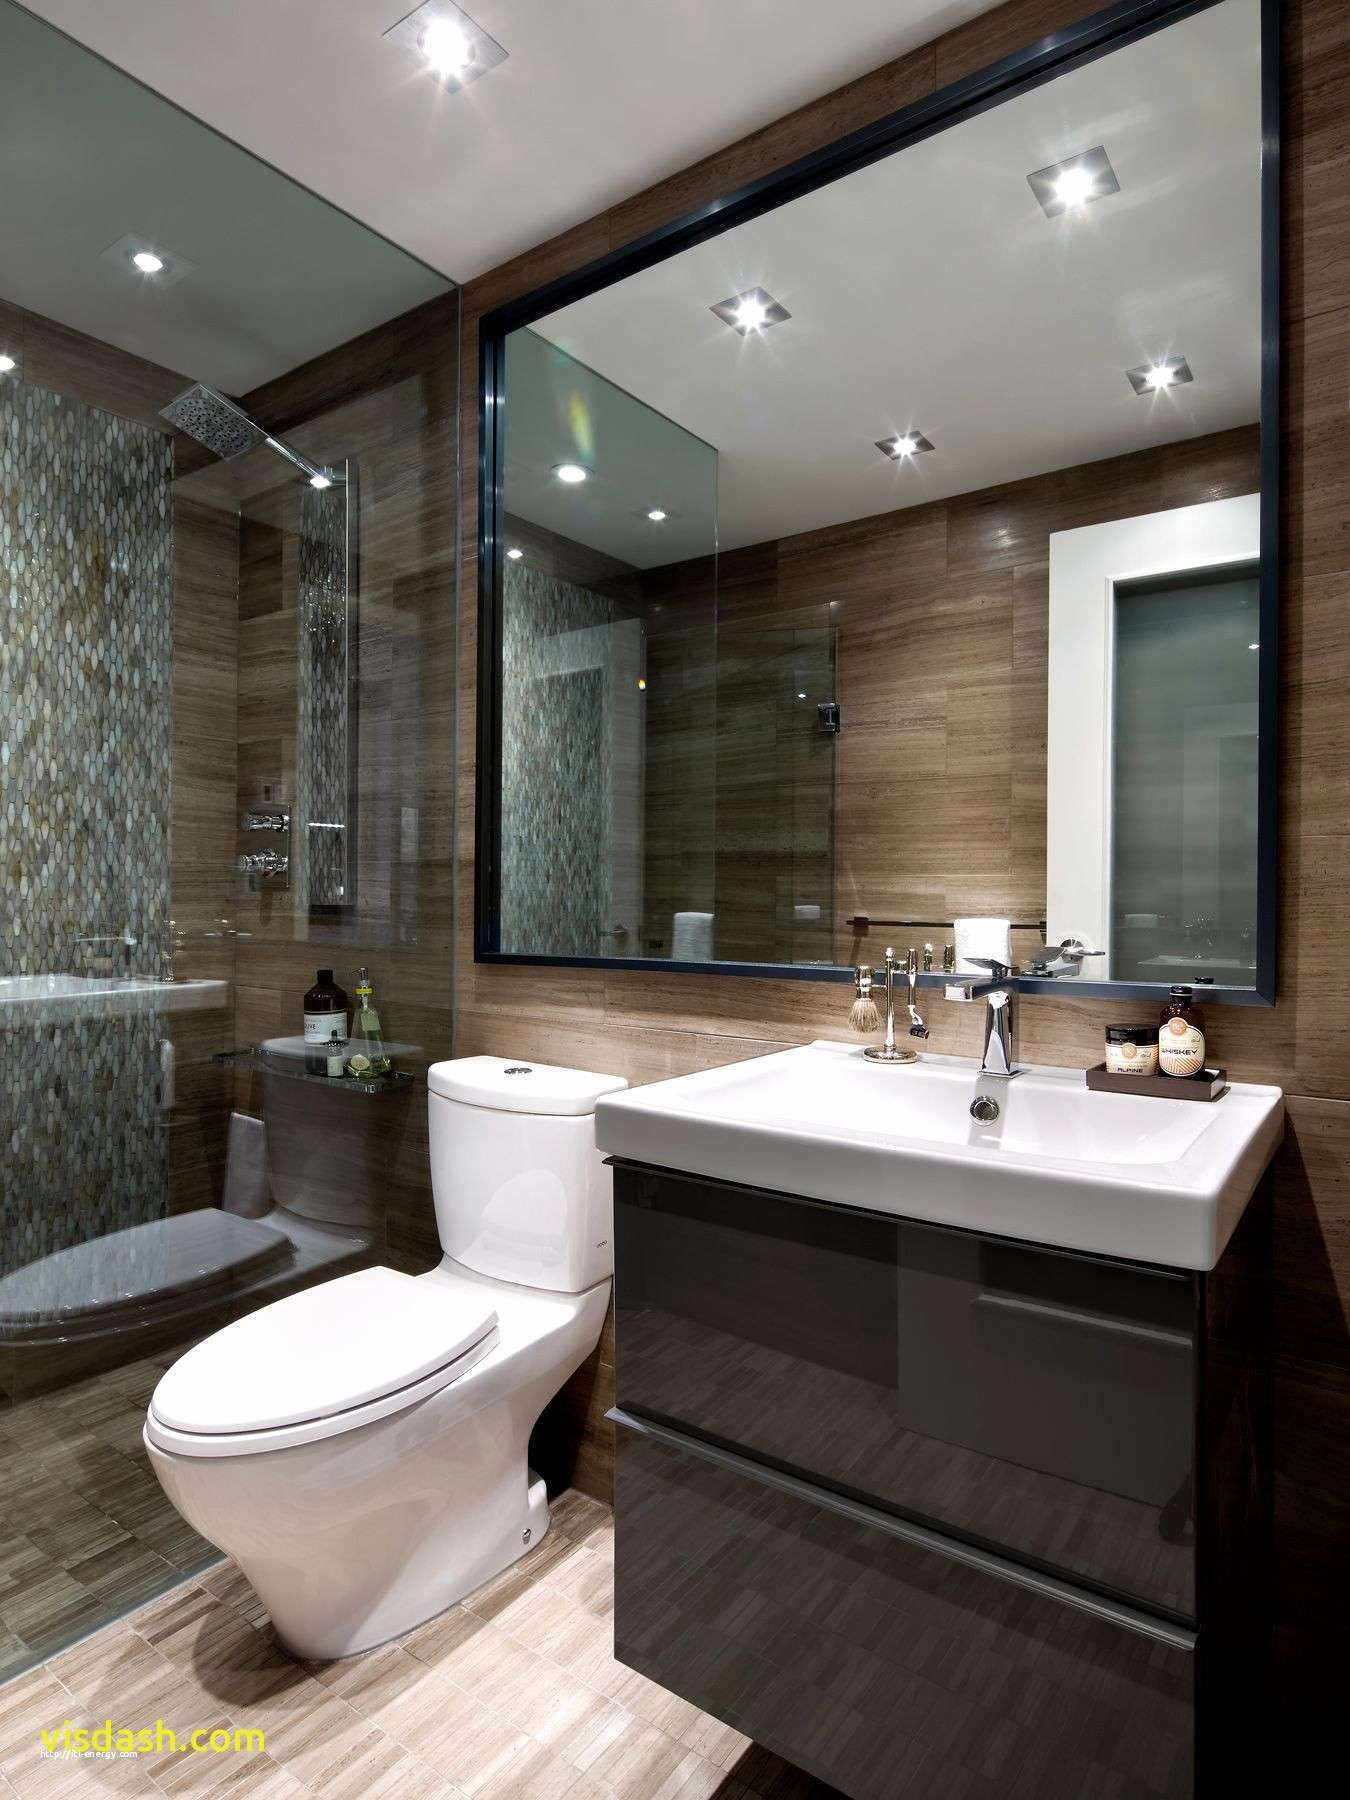 Lovely Bathroom Design And Decorating Ideas